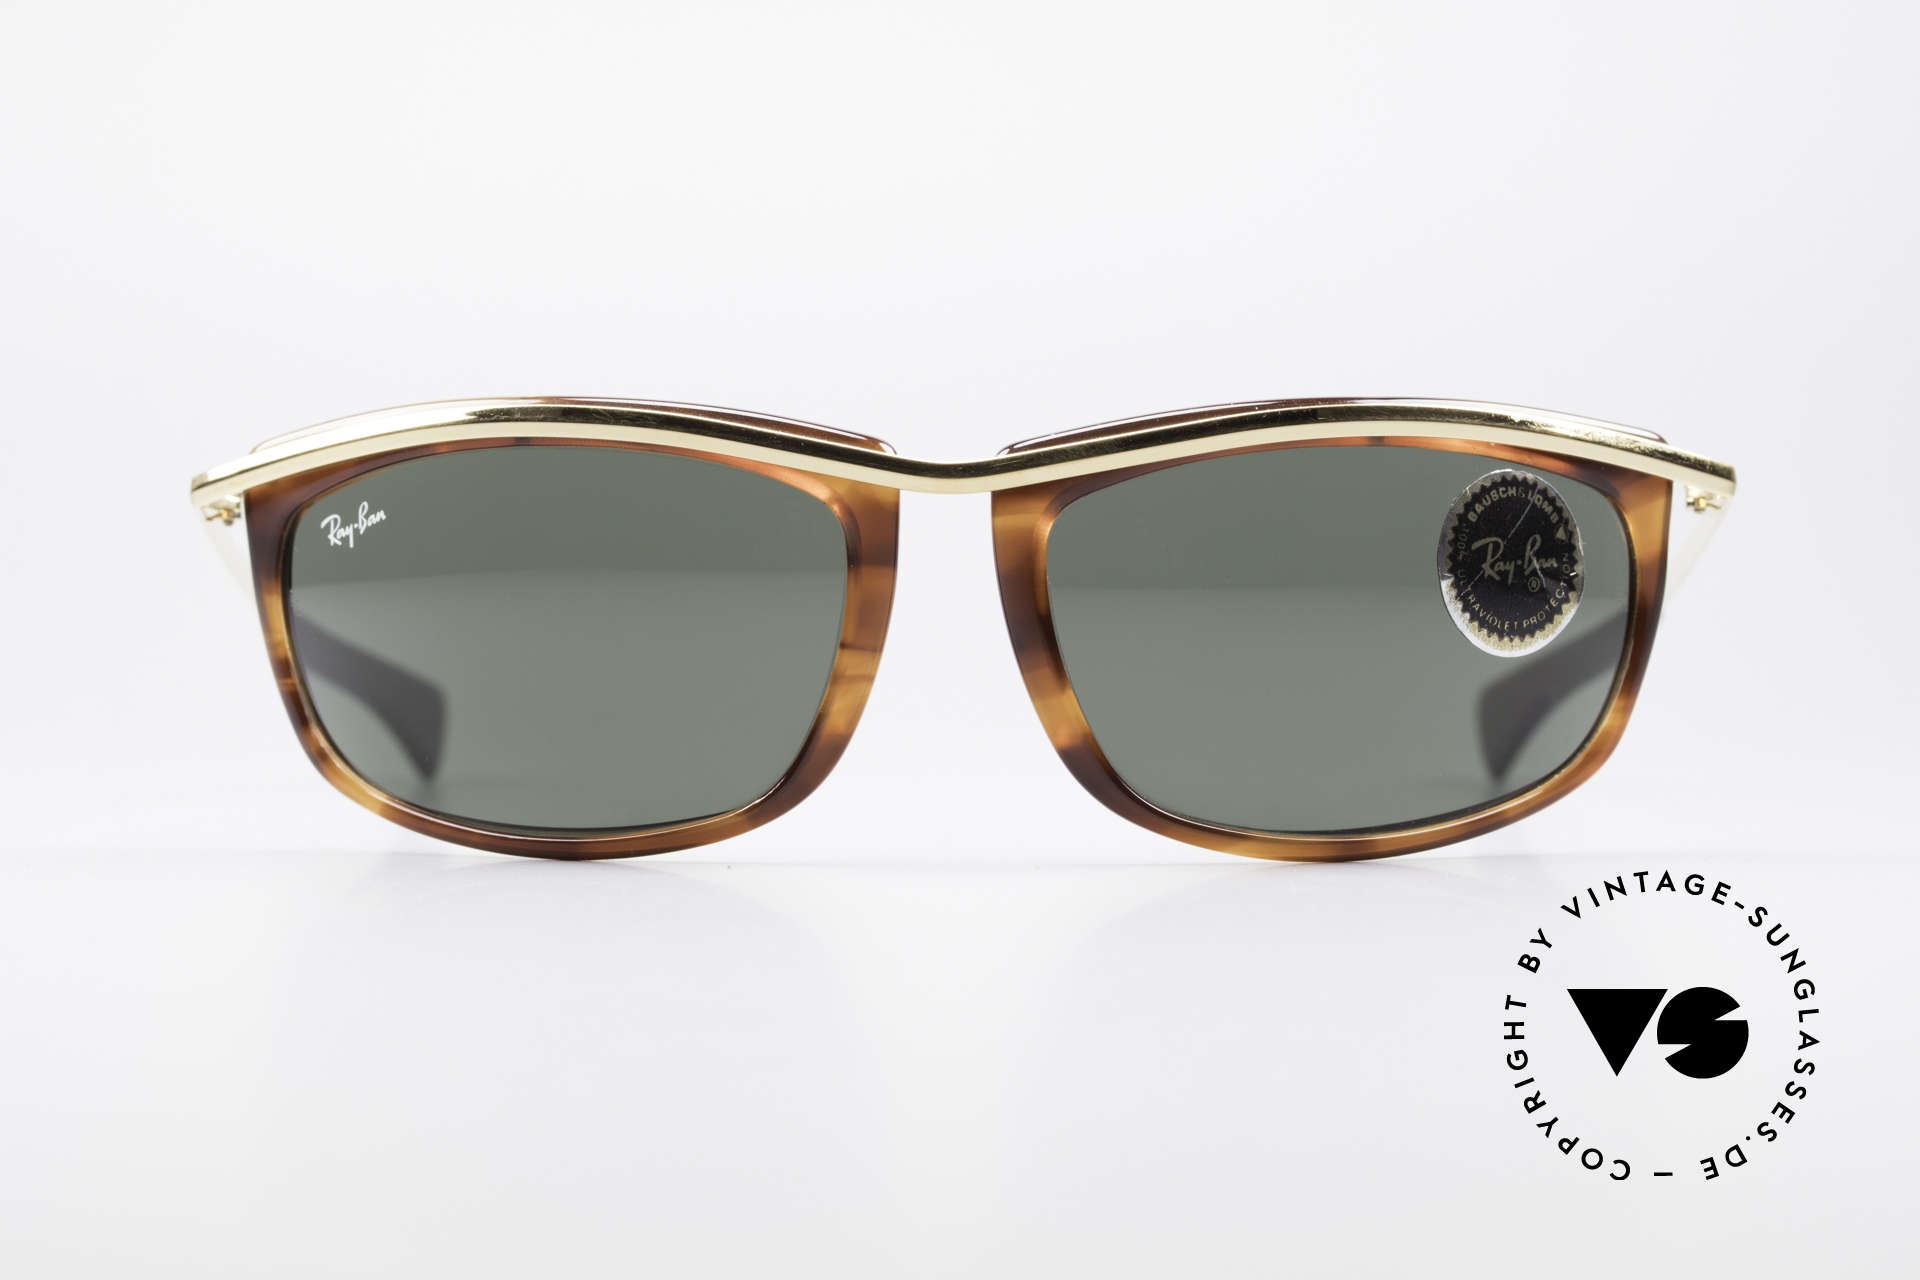 Ray Ban Olympian I Sporty USA B&L Sunglasses, striking shape & perfect XL fit (high-end quality), Made for Men